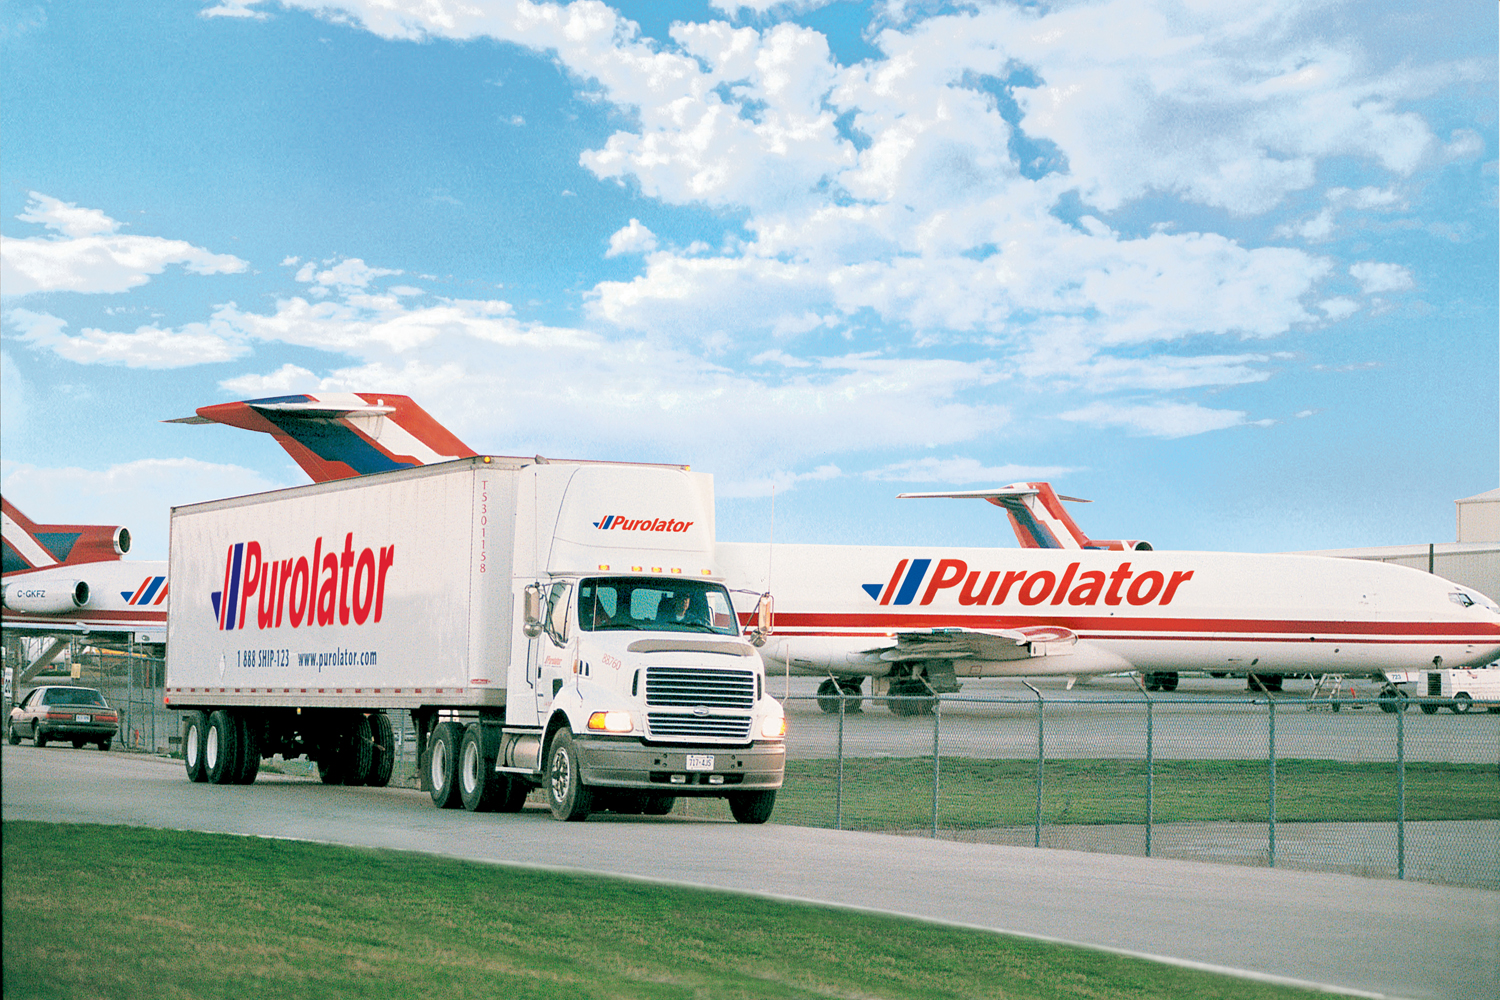 Purolator Call Center Purolator Usa Offers Options To Help Businesses Manage